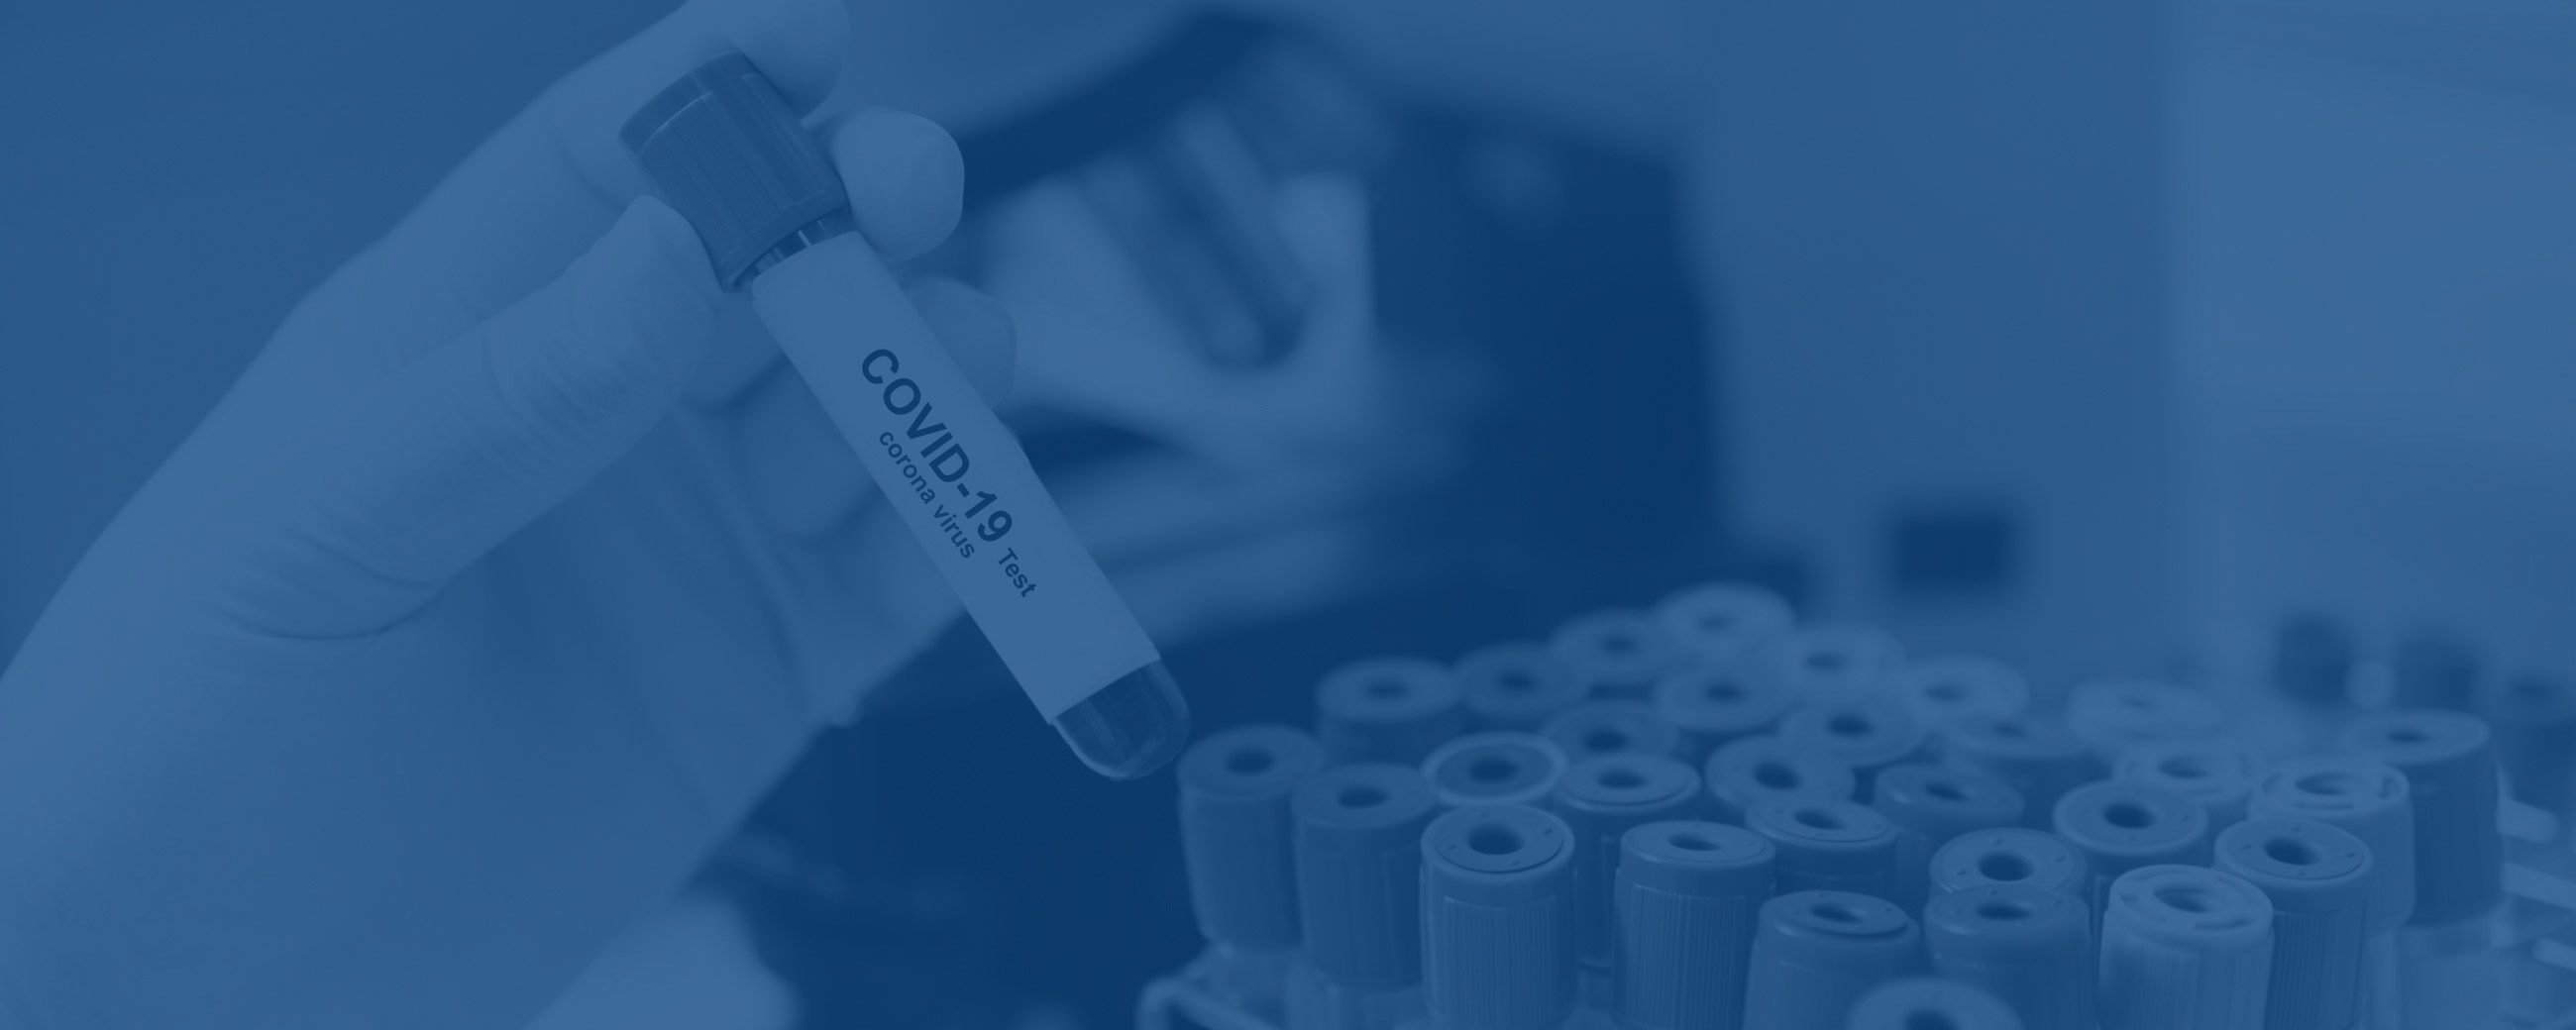 "Blue background image of a hand holding a test tube of blood labeled ""COVID-19 test"", with more blood vials in the background"